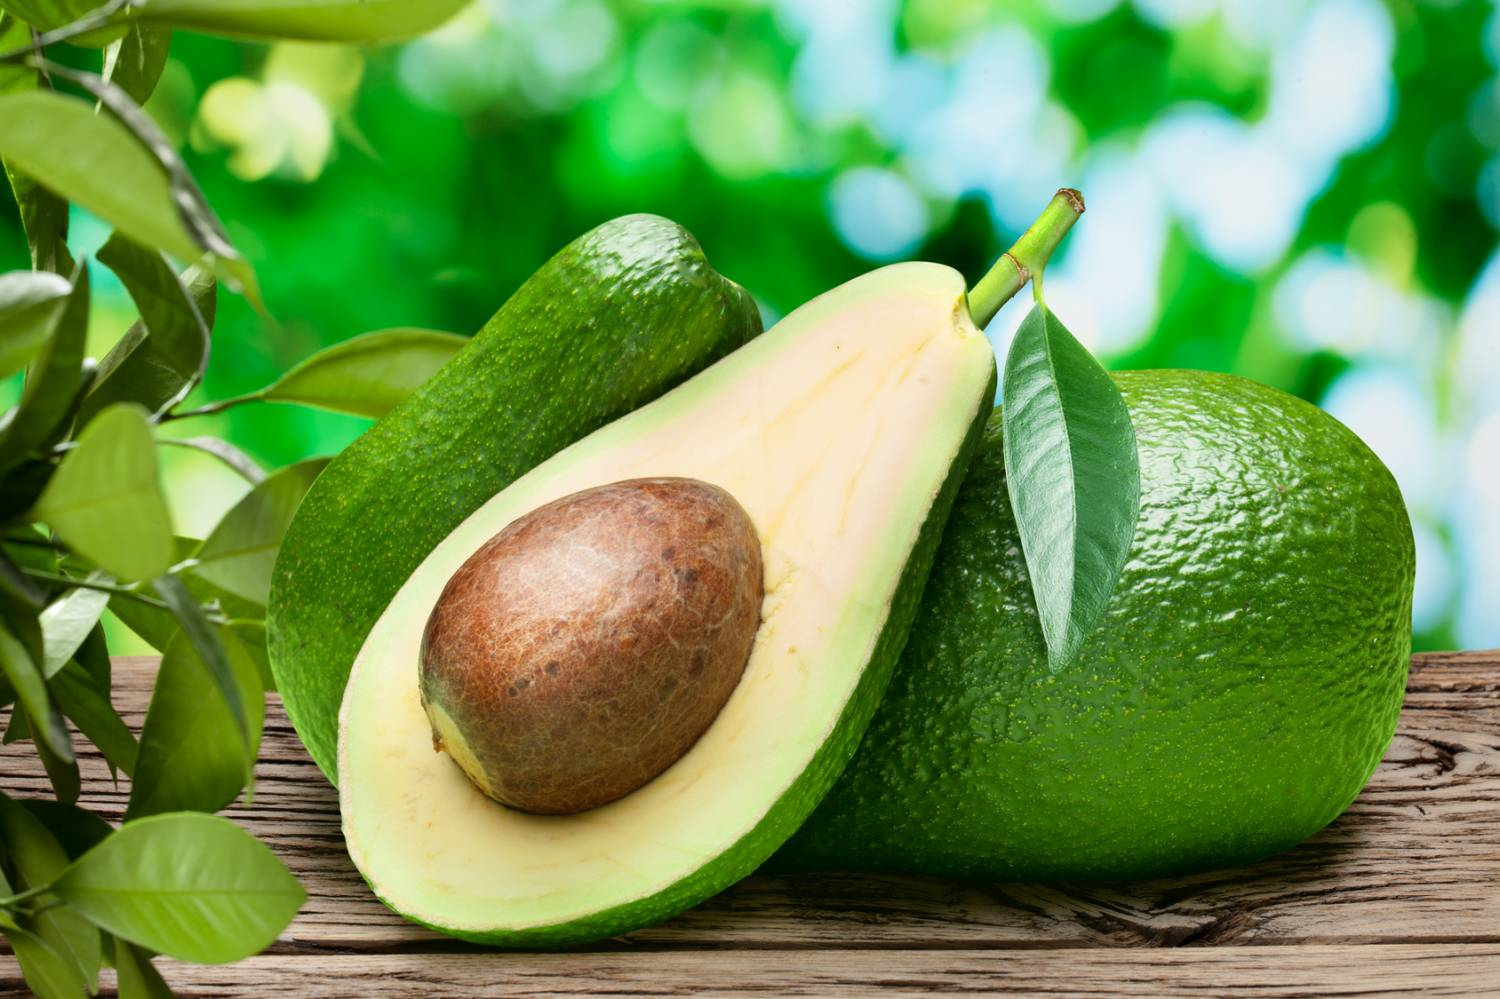 artichoke vs avocado Also foods that elevate the blood acidity, despite their low purine content, may cause an aggravation of gout some examples may be: very spicy and greasy food, coffee, alcohol, excess tea, deeply fried food and more.